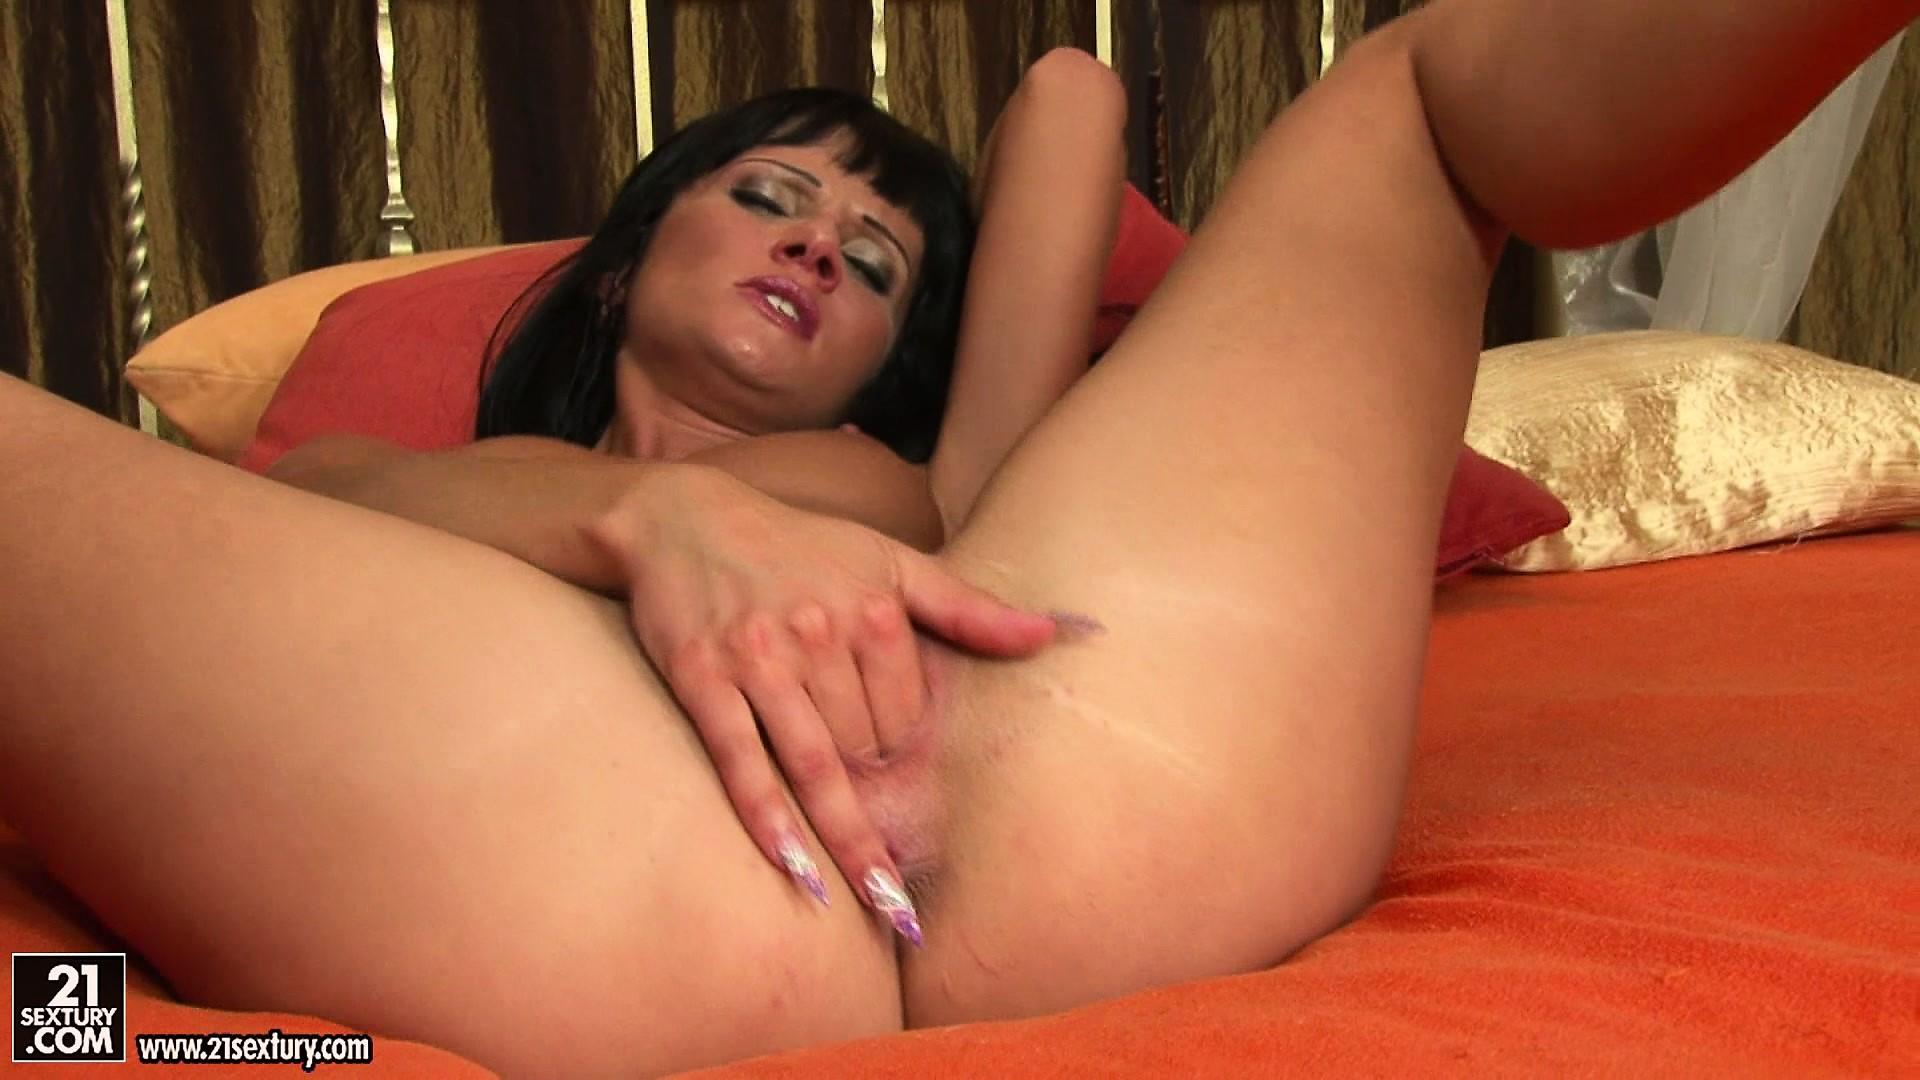 Porn Tube of Freaky Brunette Bimbo Fingers Her Cunt While Spreading It Open